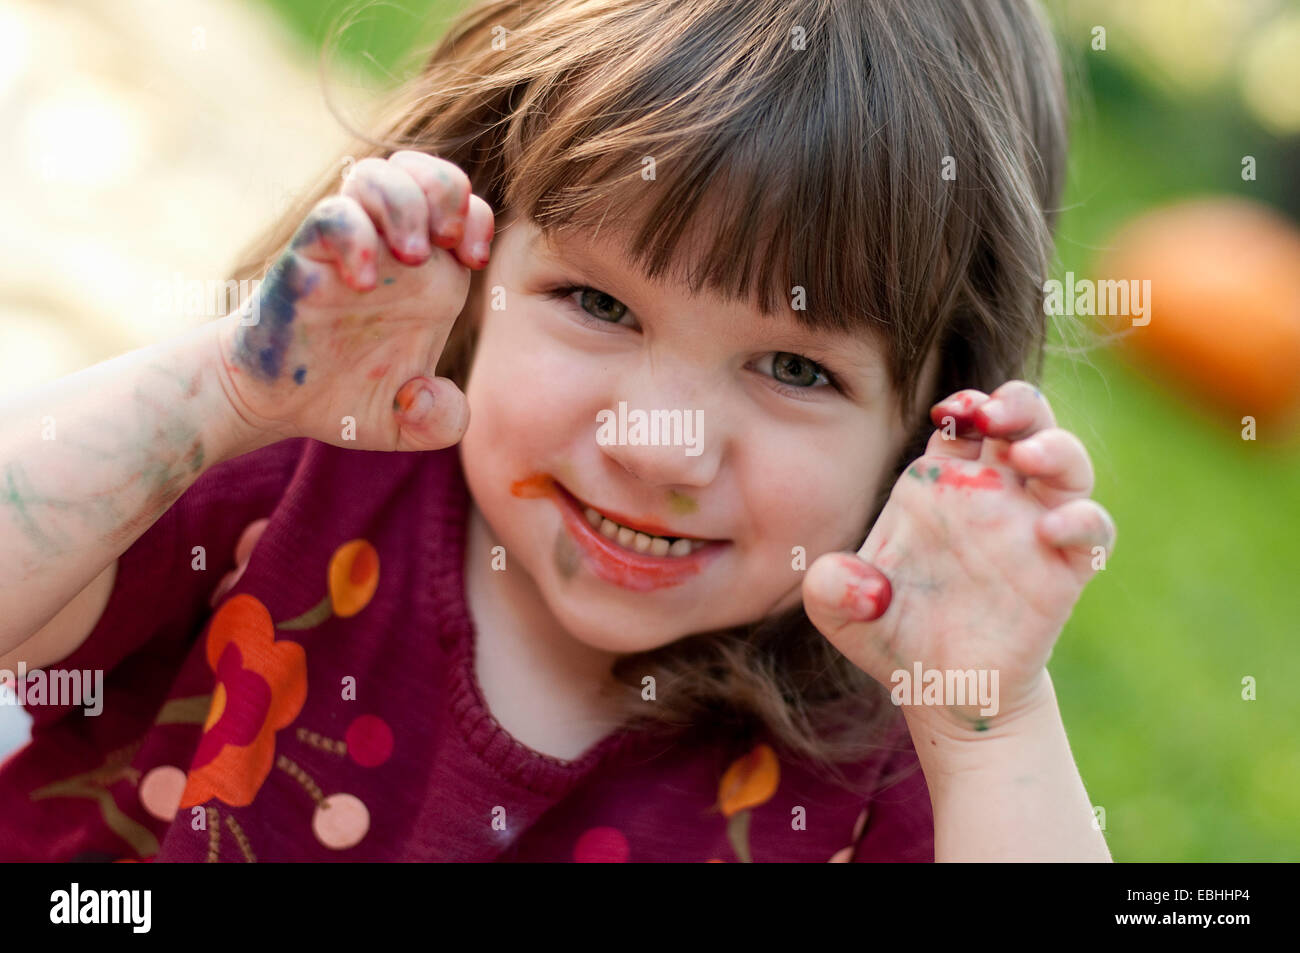 Girl with messy hands - Stock Image